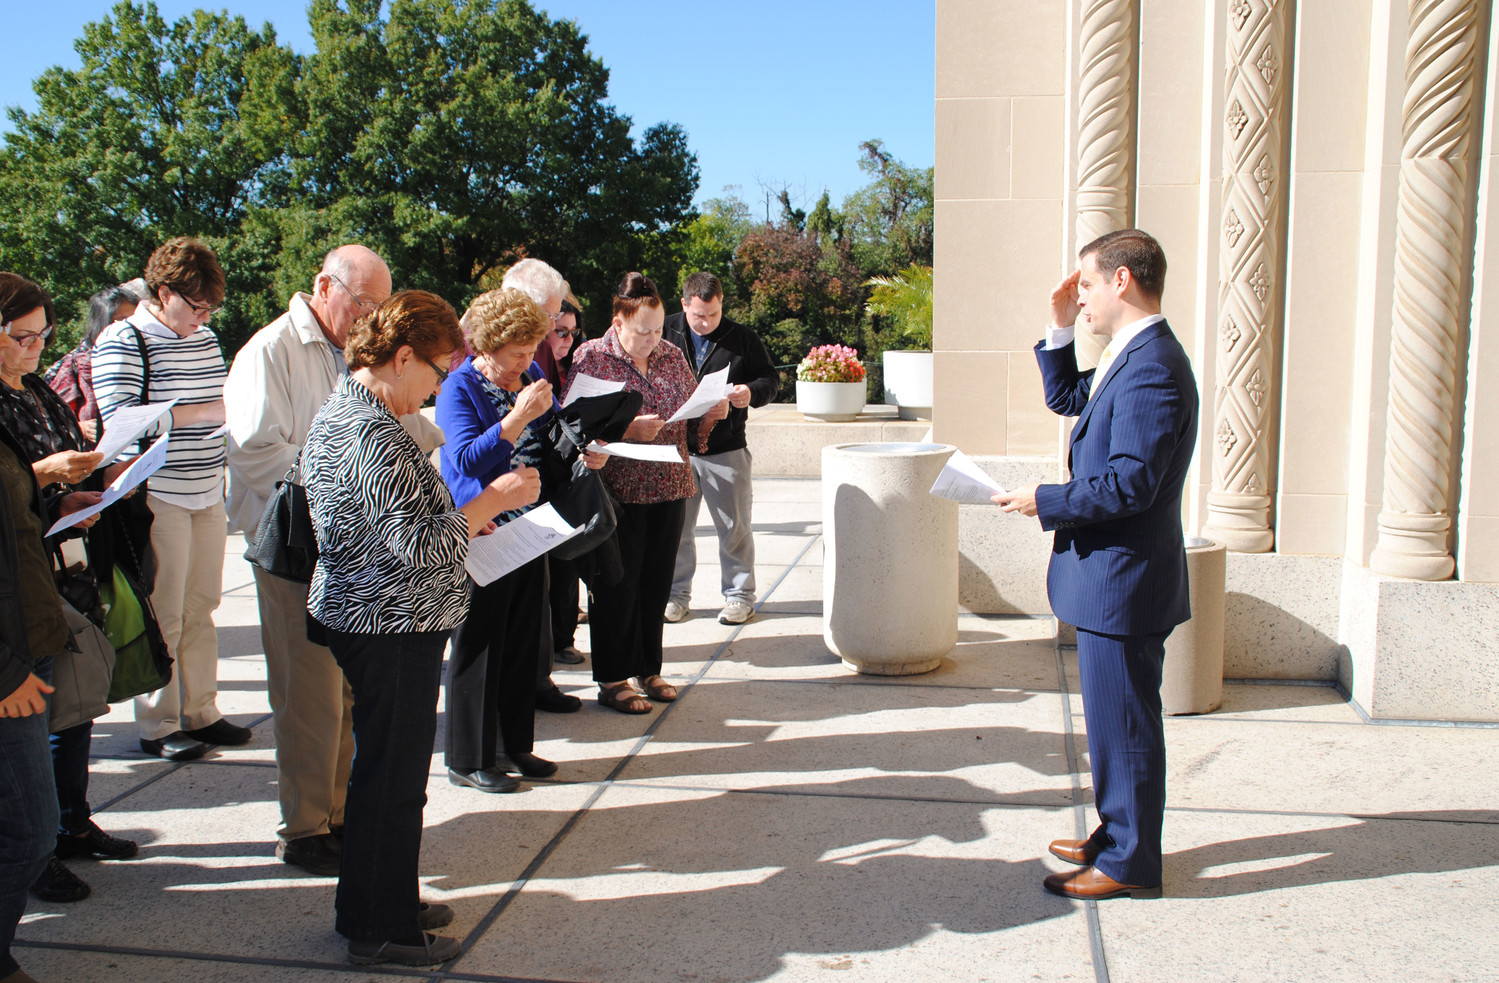 Daniel Frascella, director of the archdiocesan Office of Adult Faith Formation, leads pilgrims in prayer on the front steps of the Basilica of the National Shrine of the Immaculate Conception in Washington, D.C., in October 2016.